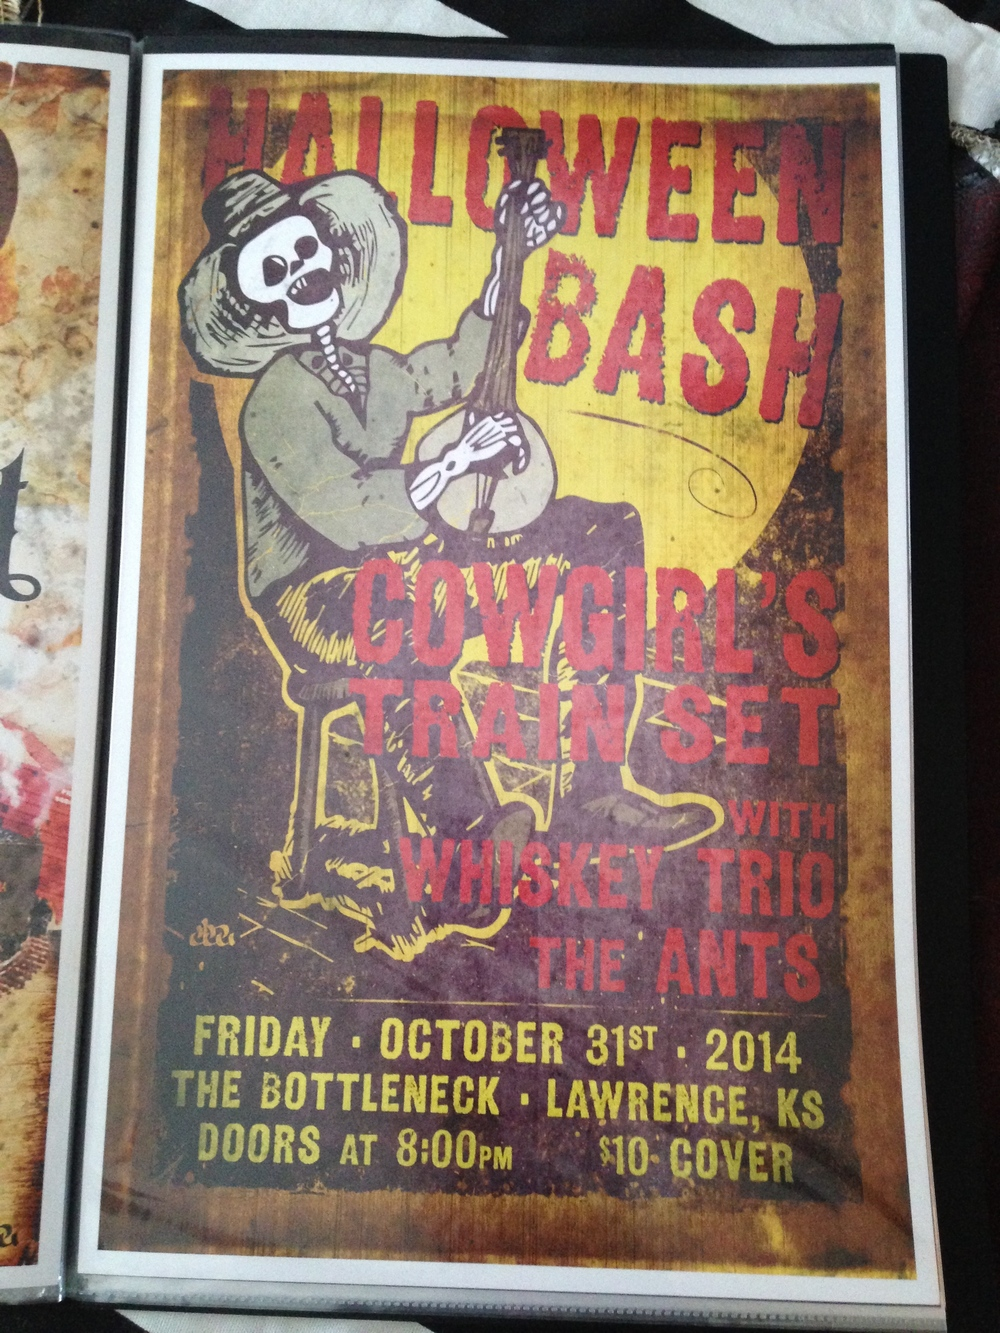 Halloween with Whiskey Trio and the Ants $5.00 #Halloween1